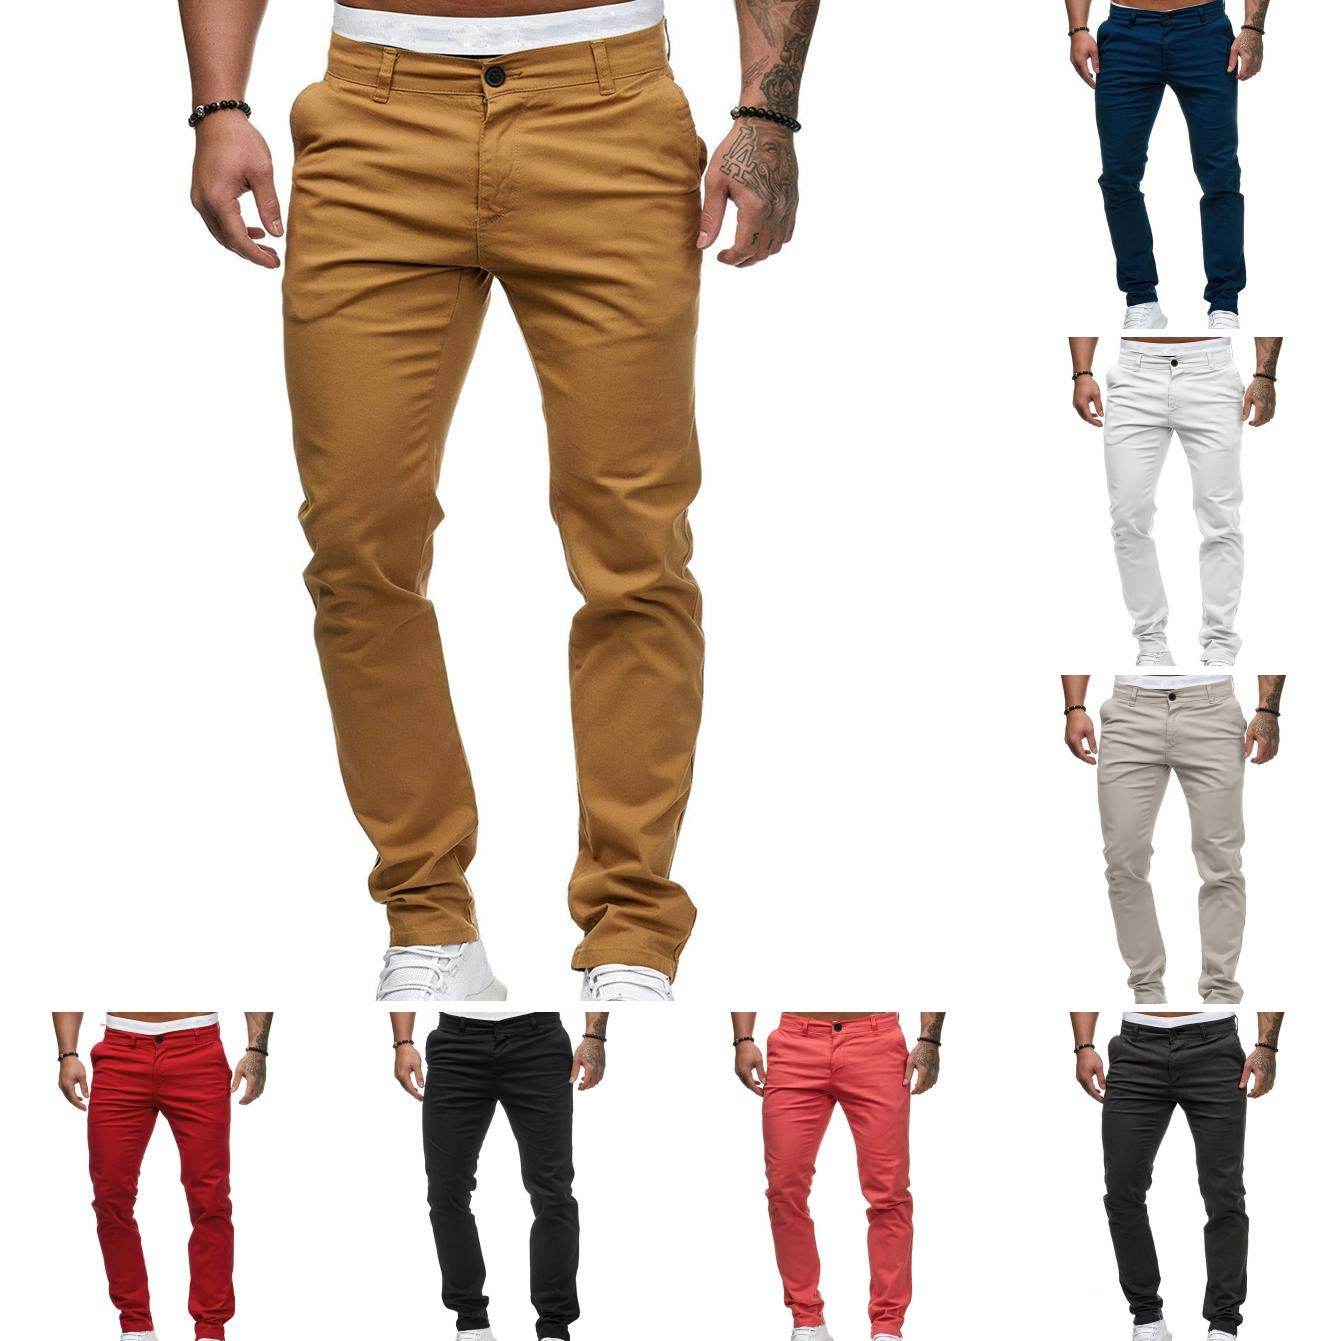 vOPRvana1n Men Casual Pants Fashion Solid Color Pocket Straight Slim Fit Zipper Button Long Trousers Navy Blue XL